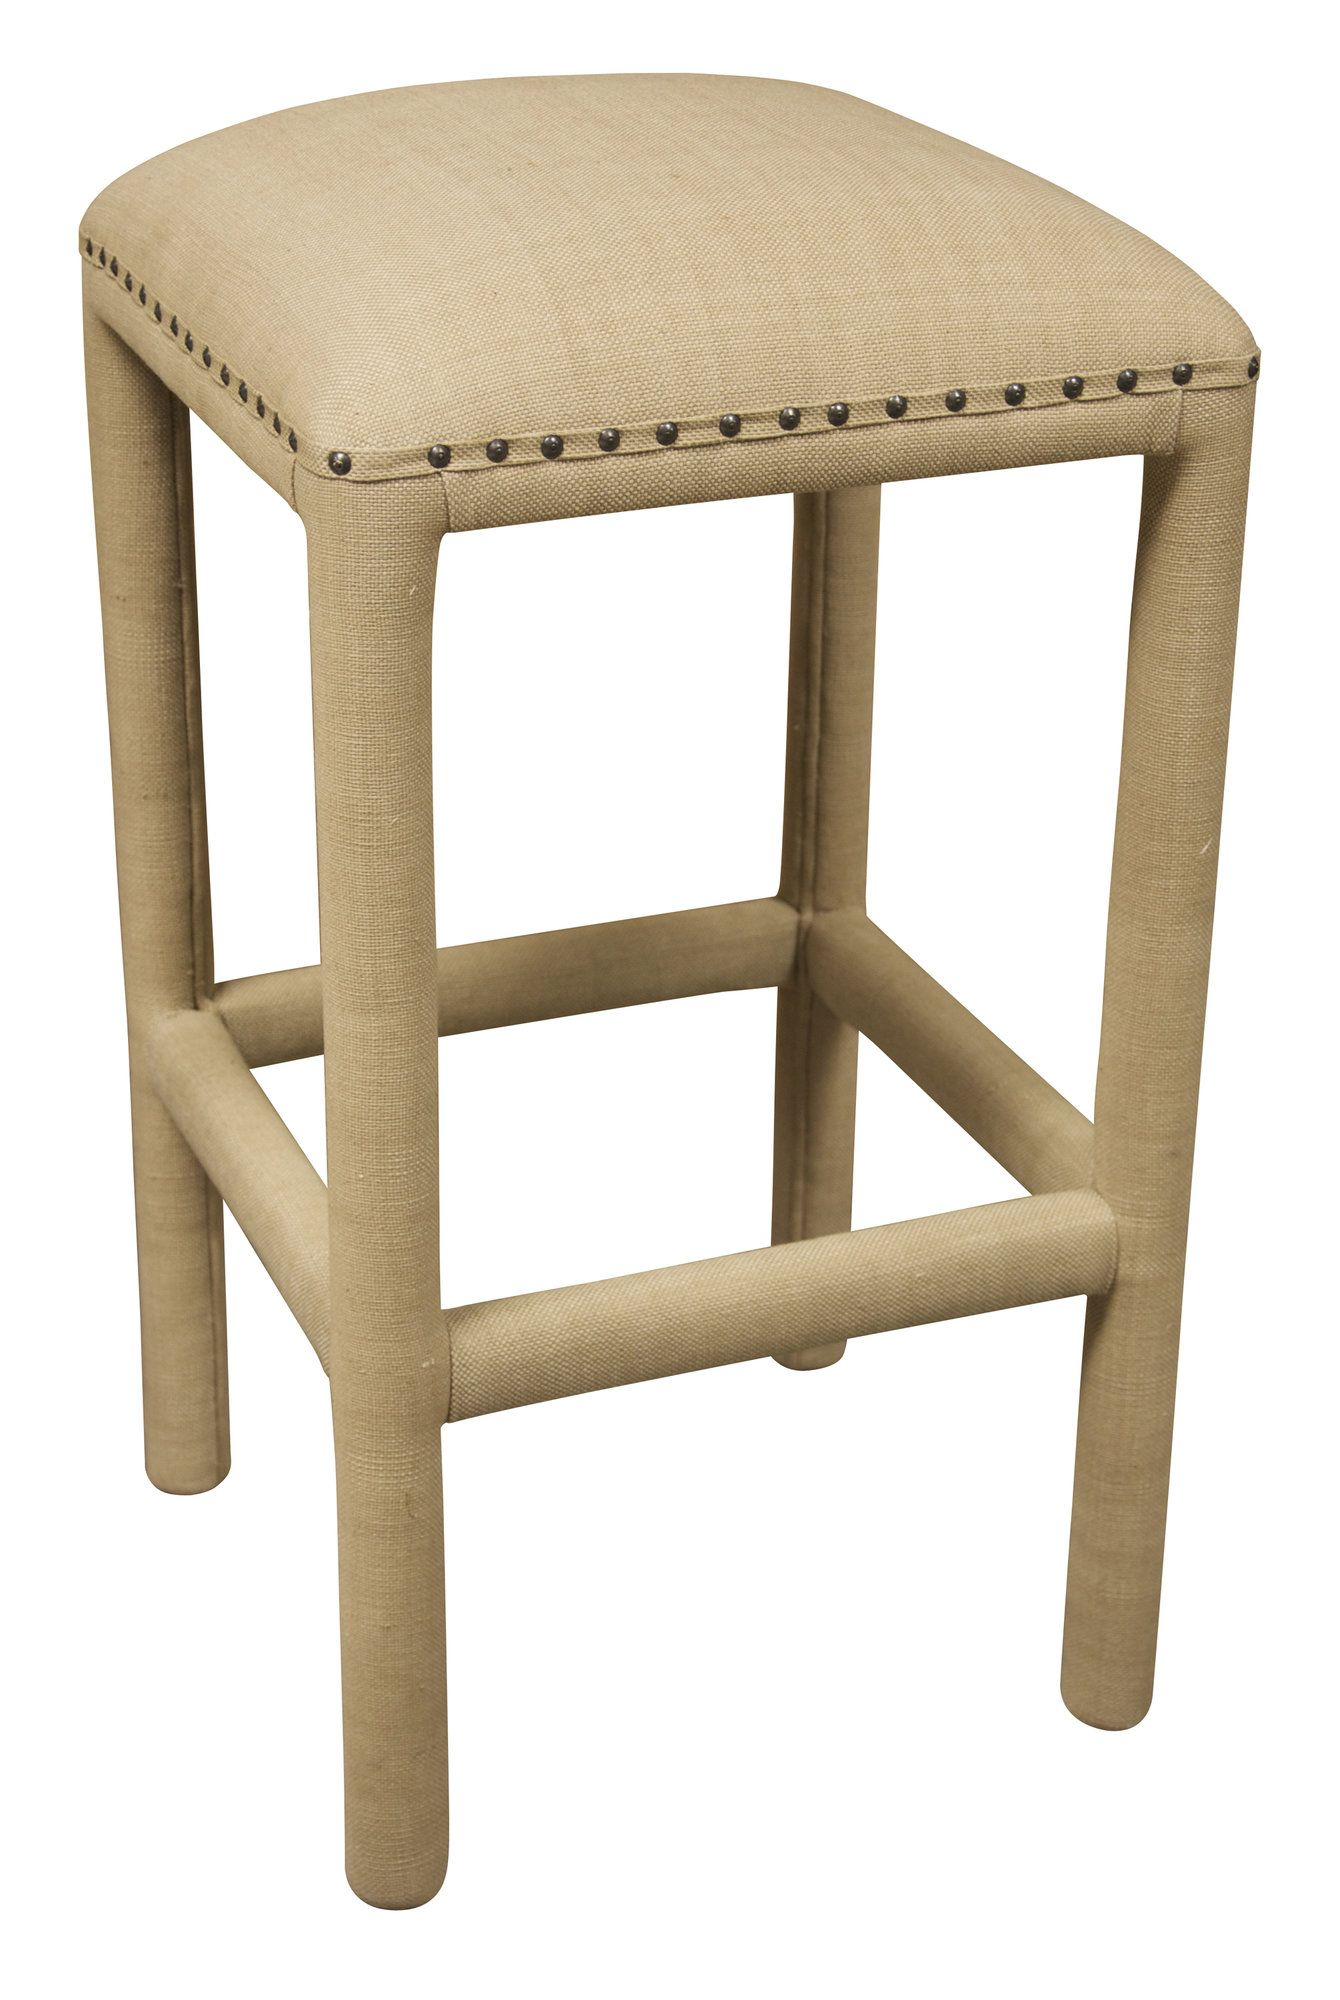 Gustavo stool products pinterest stools and products